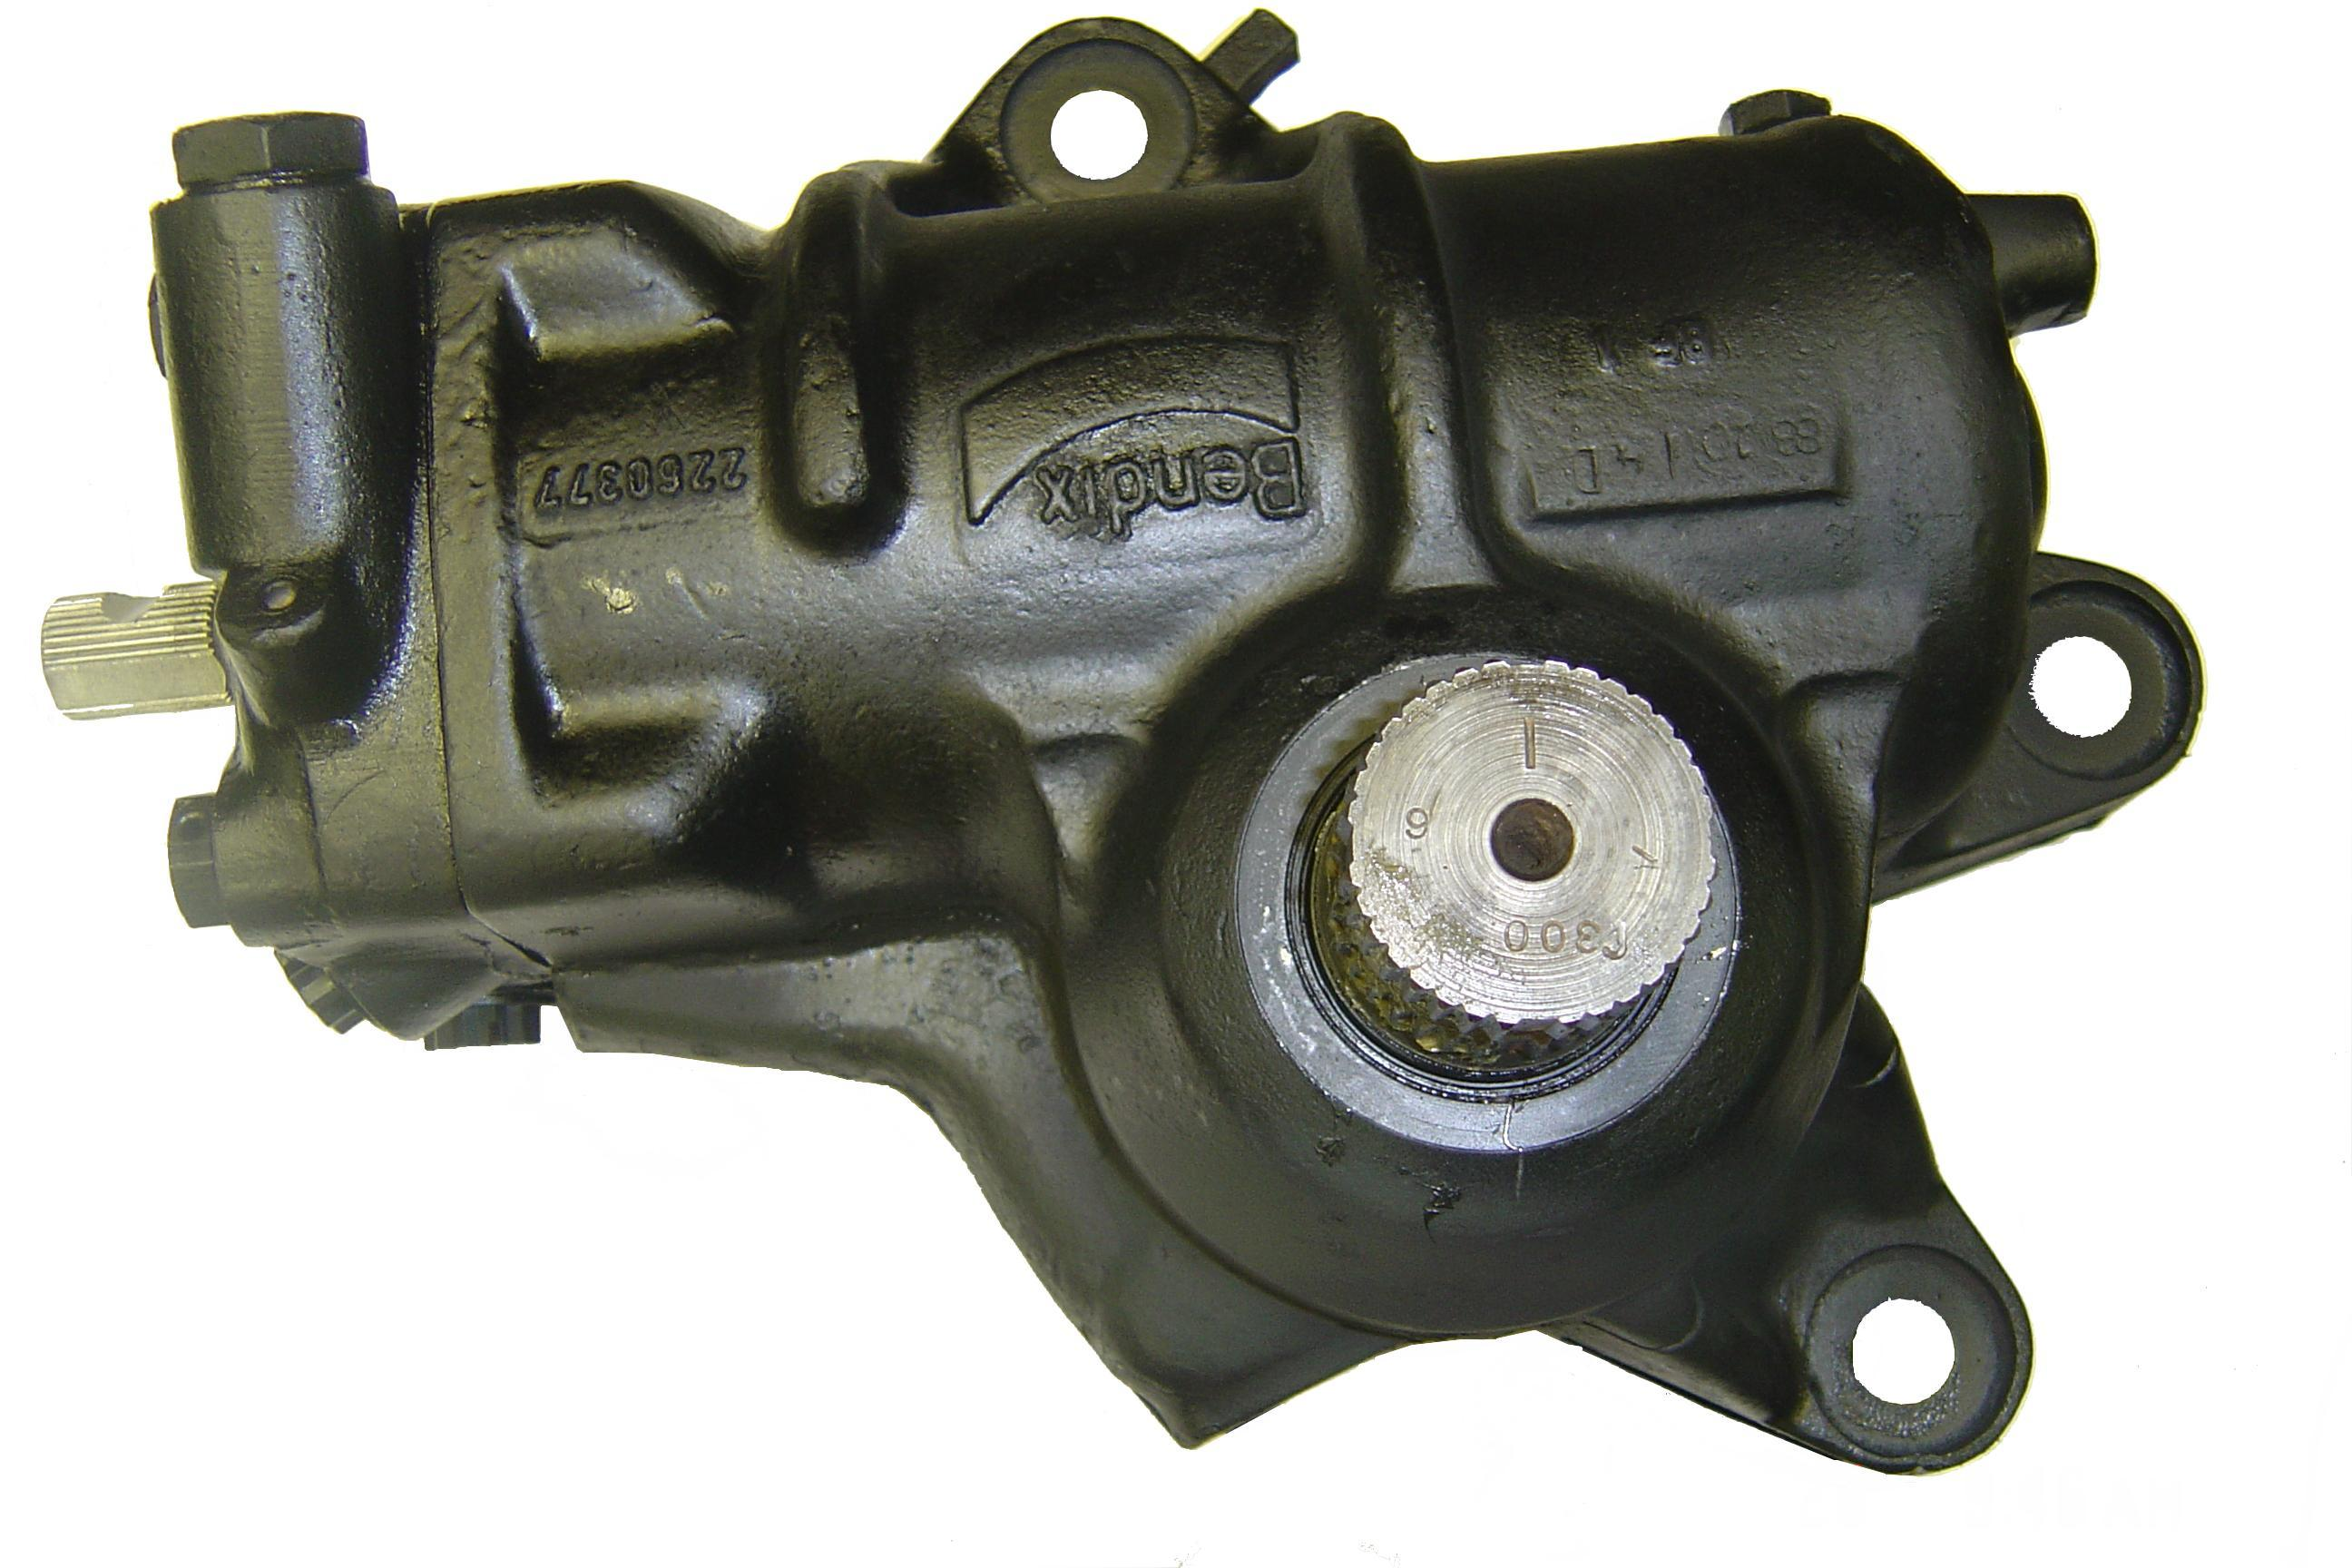 Detail power steering eps likewise Viewtopic likewise Steering moreover 7de5o Gm Astro Question Routing Power Steering Lines likewise Watch. on power rack and pinion steering system diagram